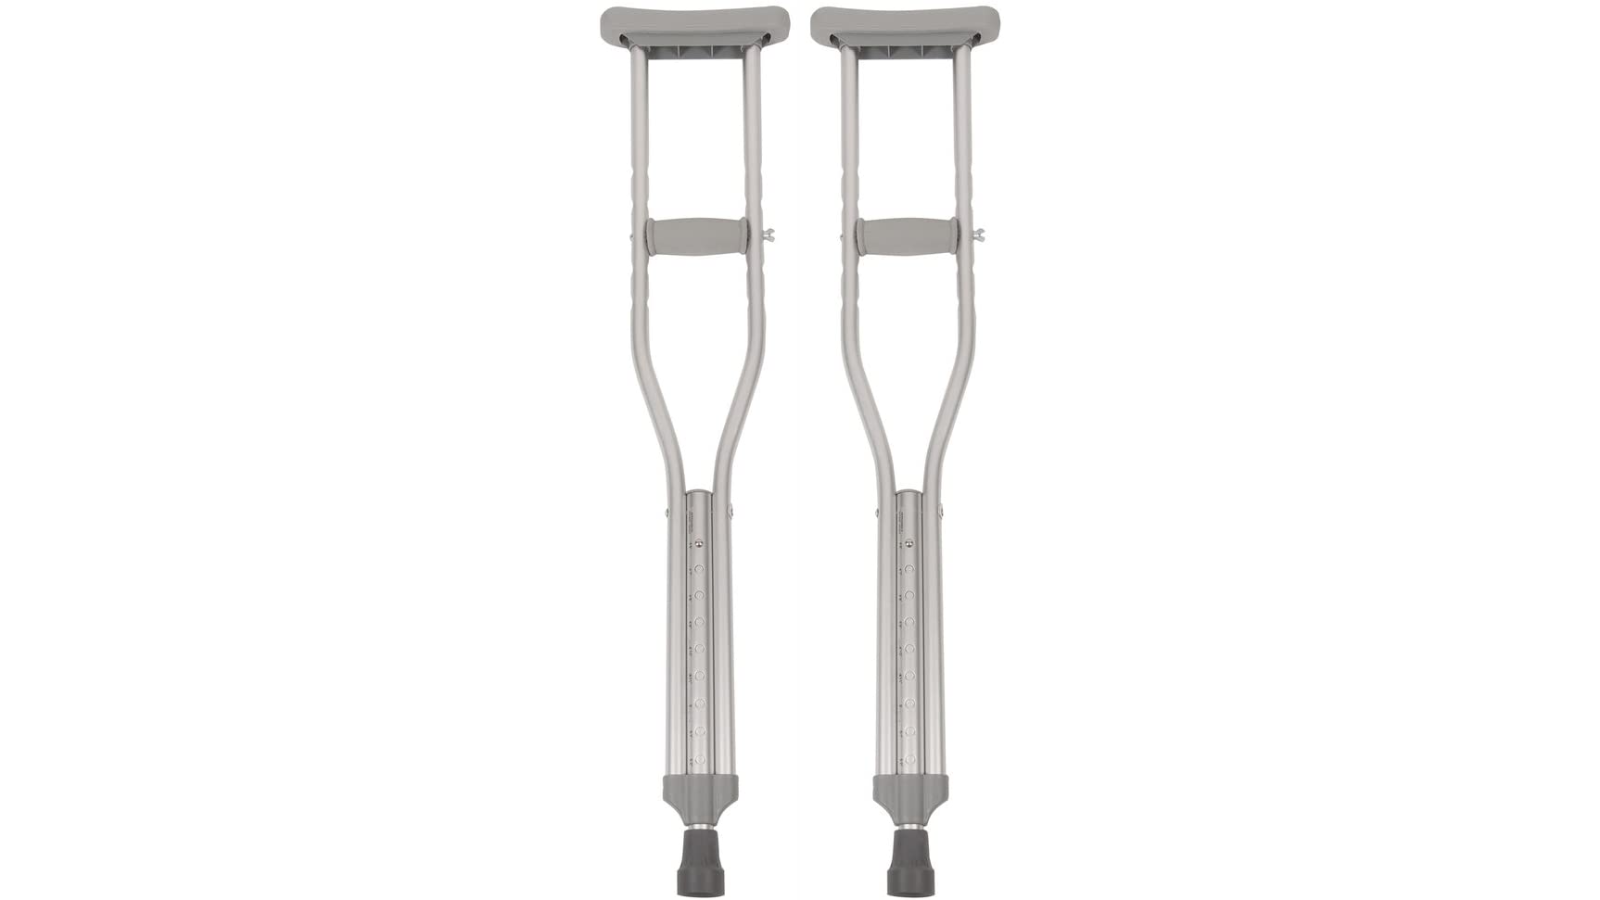 A pair of crutches show against a white background